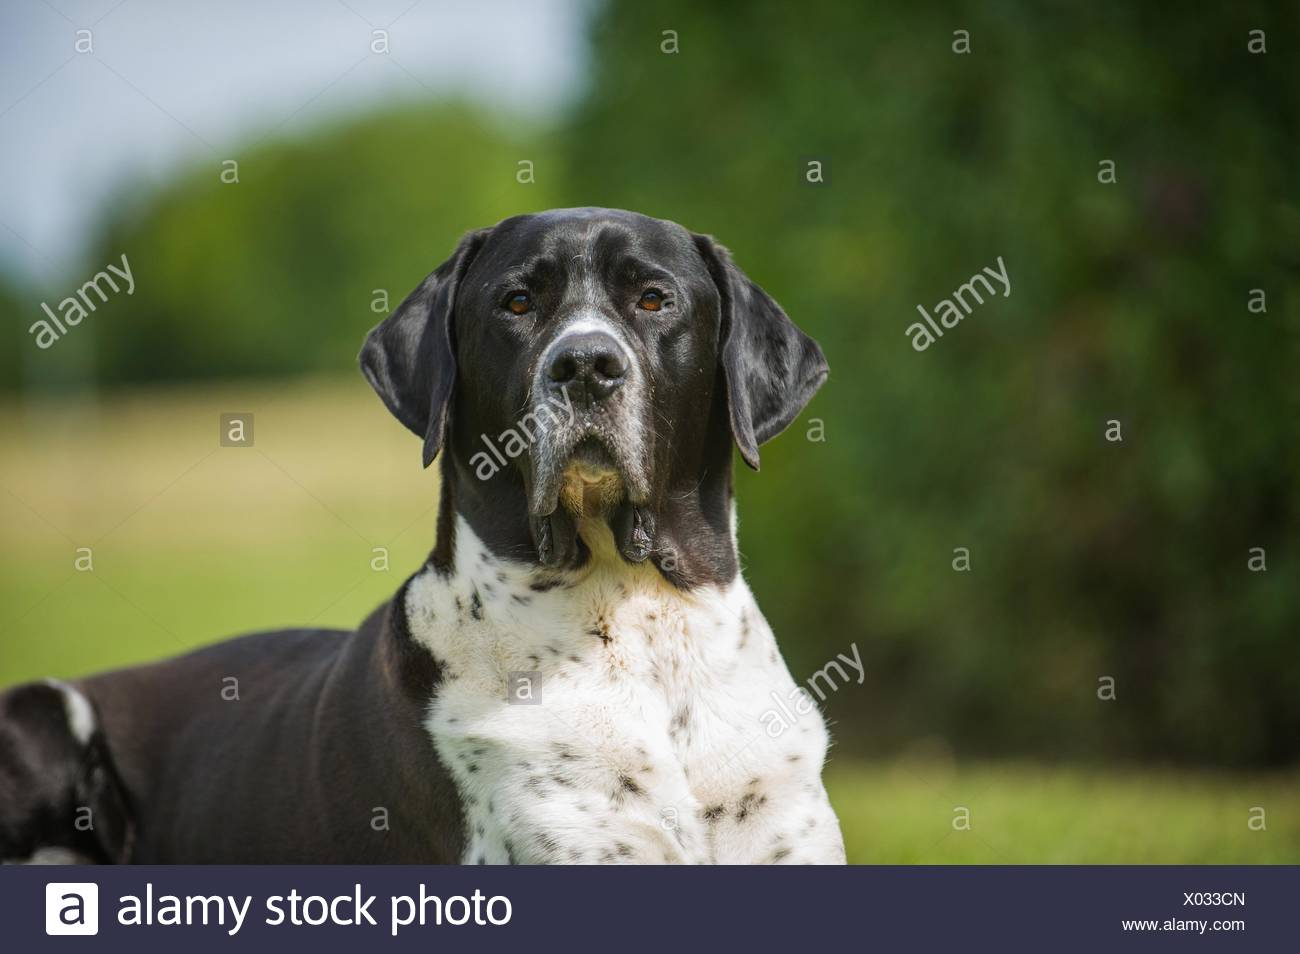 Great-Dane-Mongrel Portrait - Stock Image